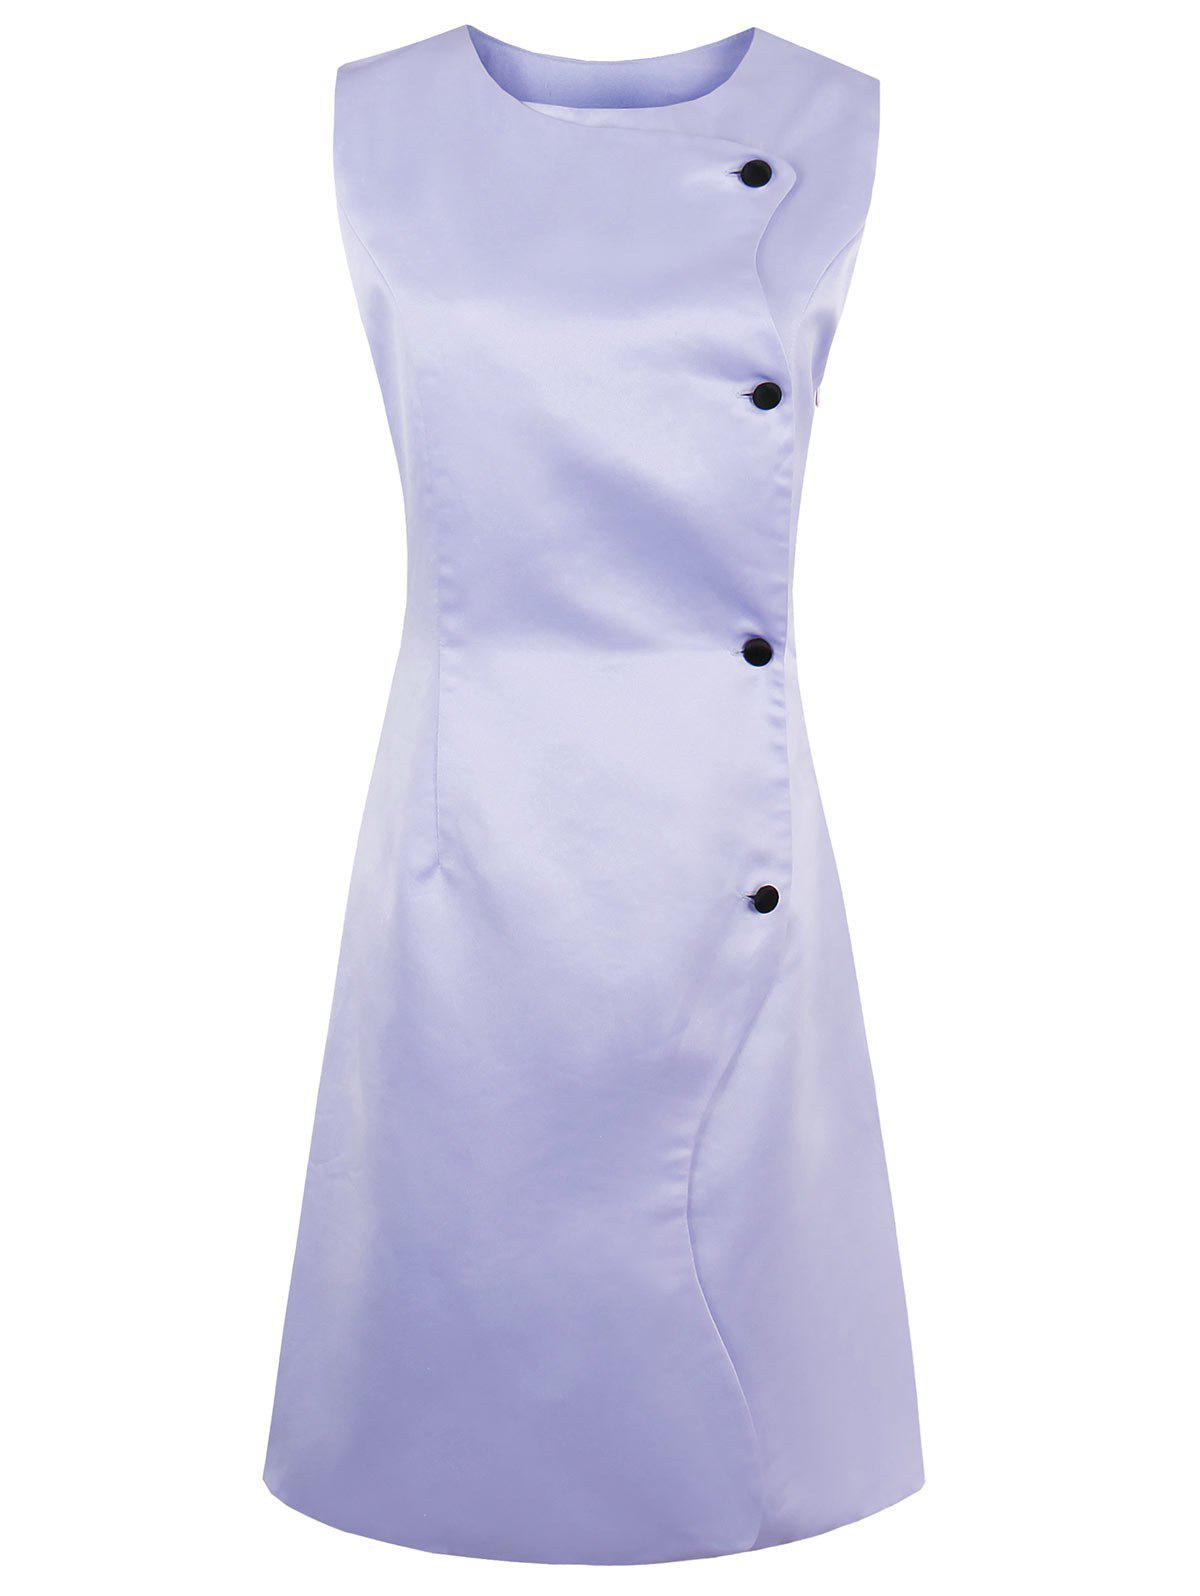 Button Up A Line Sleeveless Dress - LAVENDER FROST 2XL